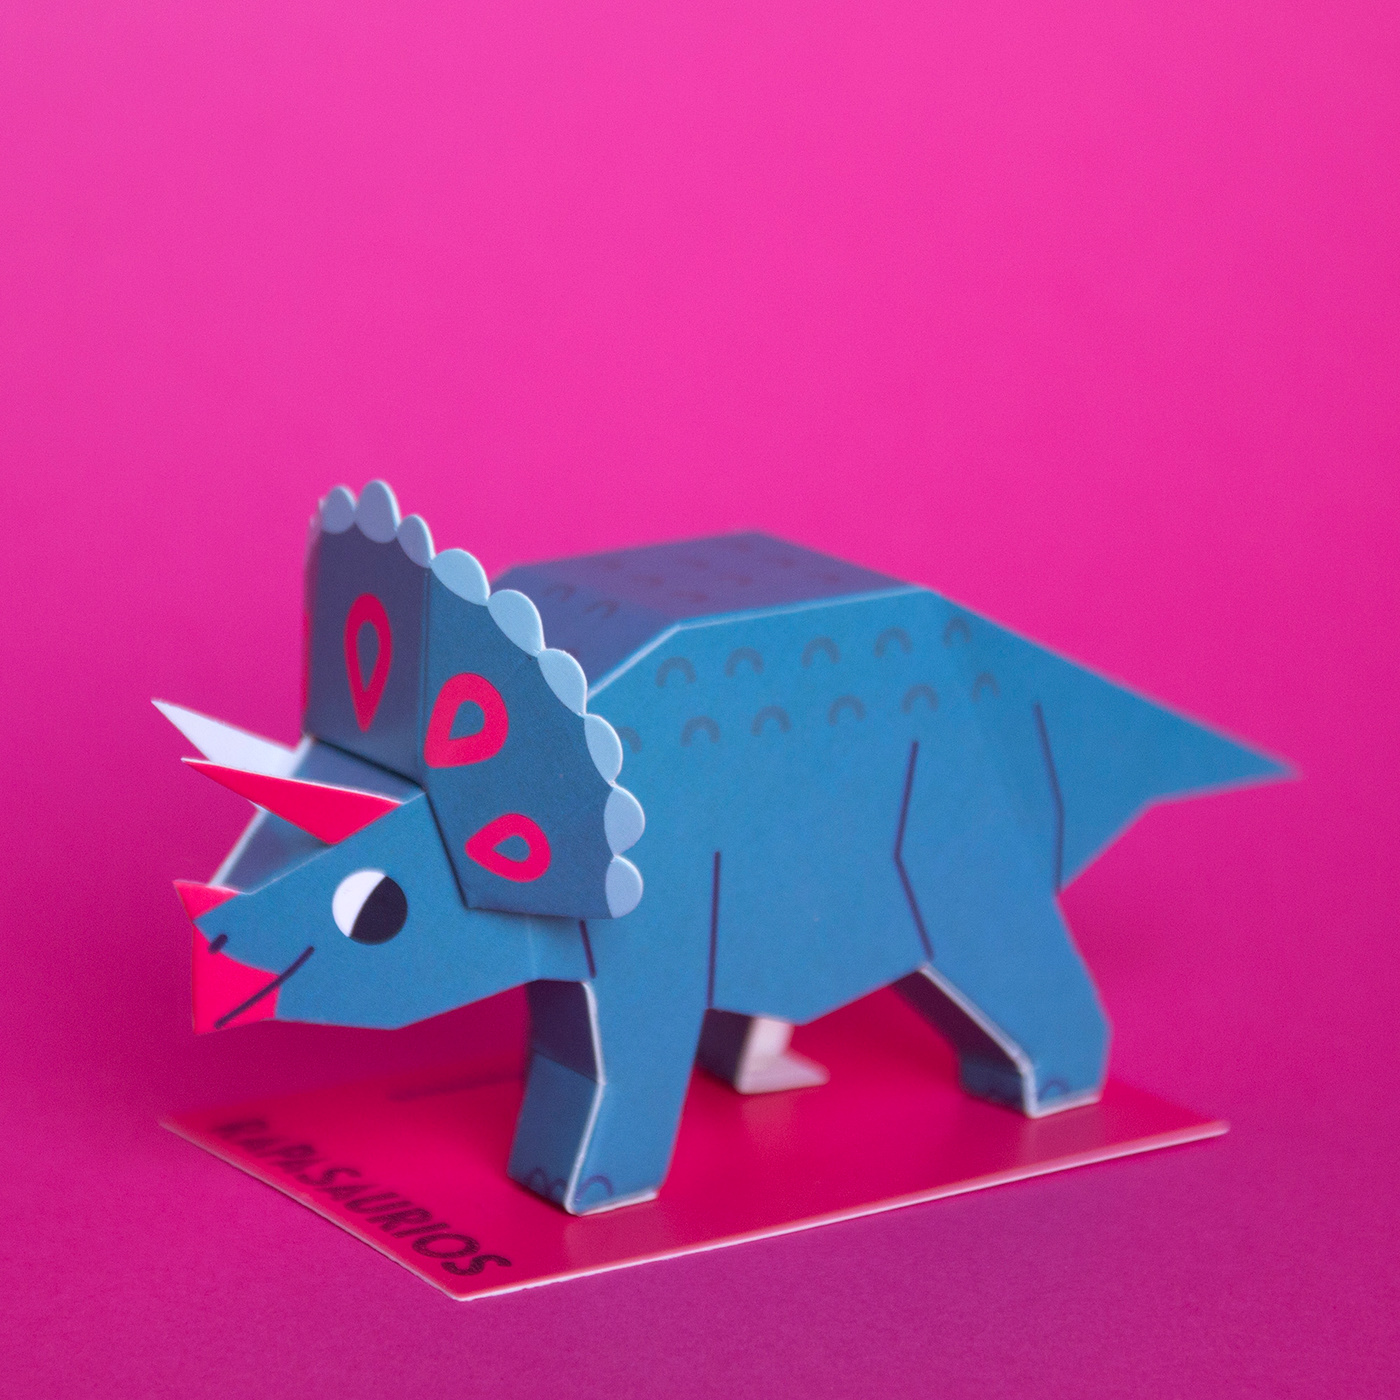 papercraft dinosaurs guardabosques rapanui paper dinosaurs lowpoly paper kit ILLUSTRATION  branding  papertoys